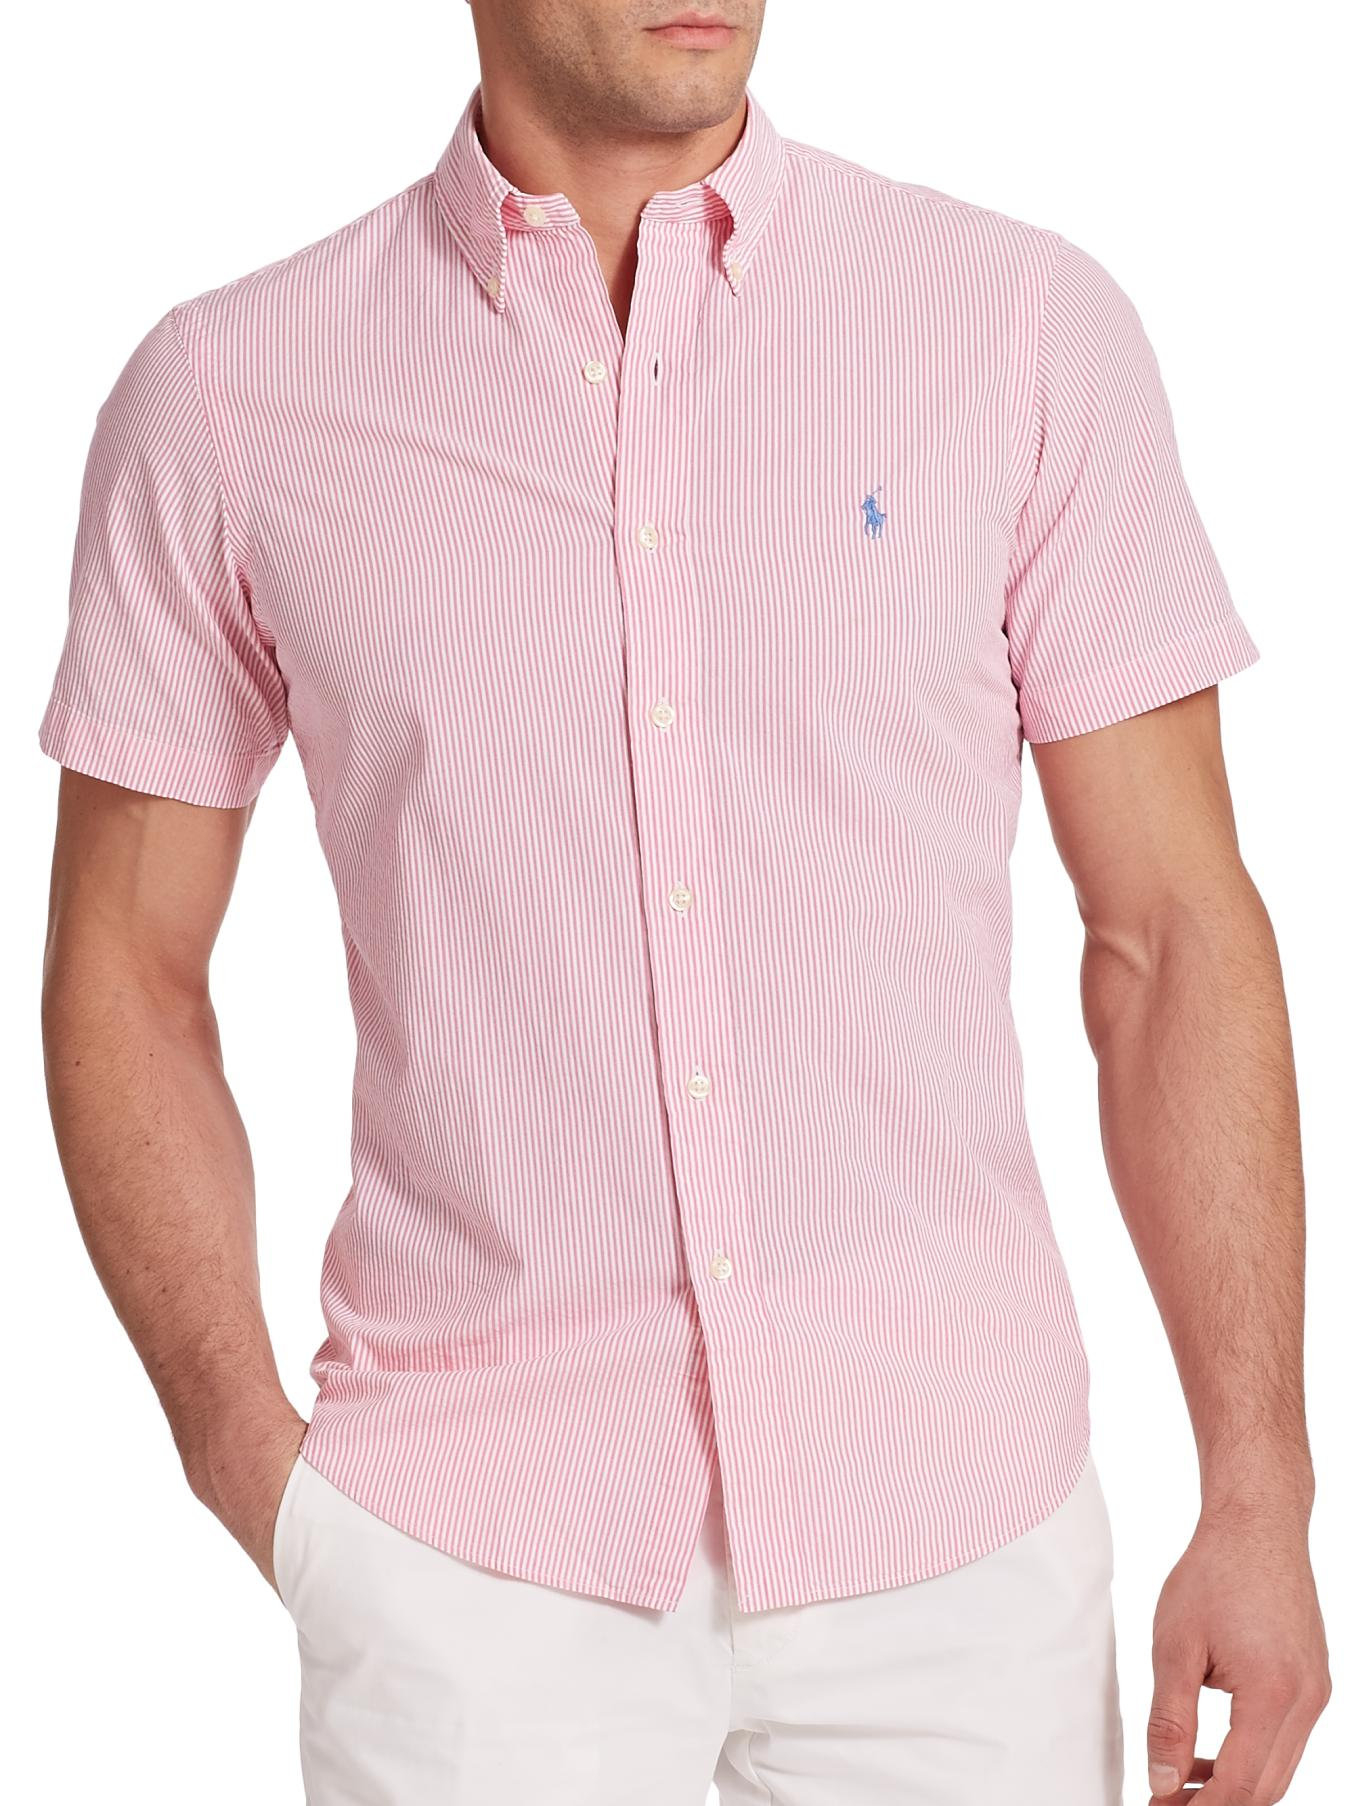 Lyst - Polo Ralph Lauren Striped Seersucker Sportshirt in Pink for Men 22bbd0aae6c1